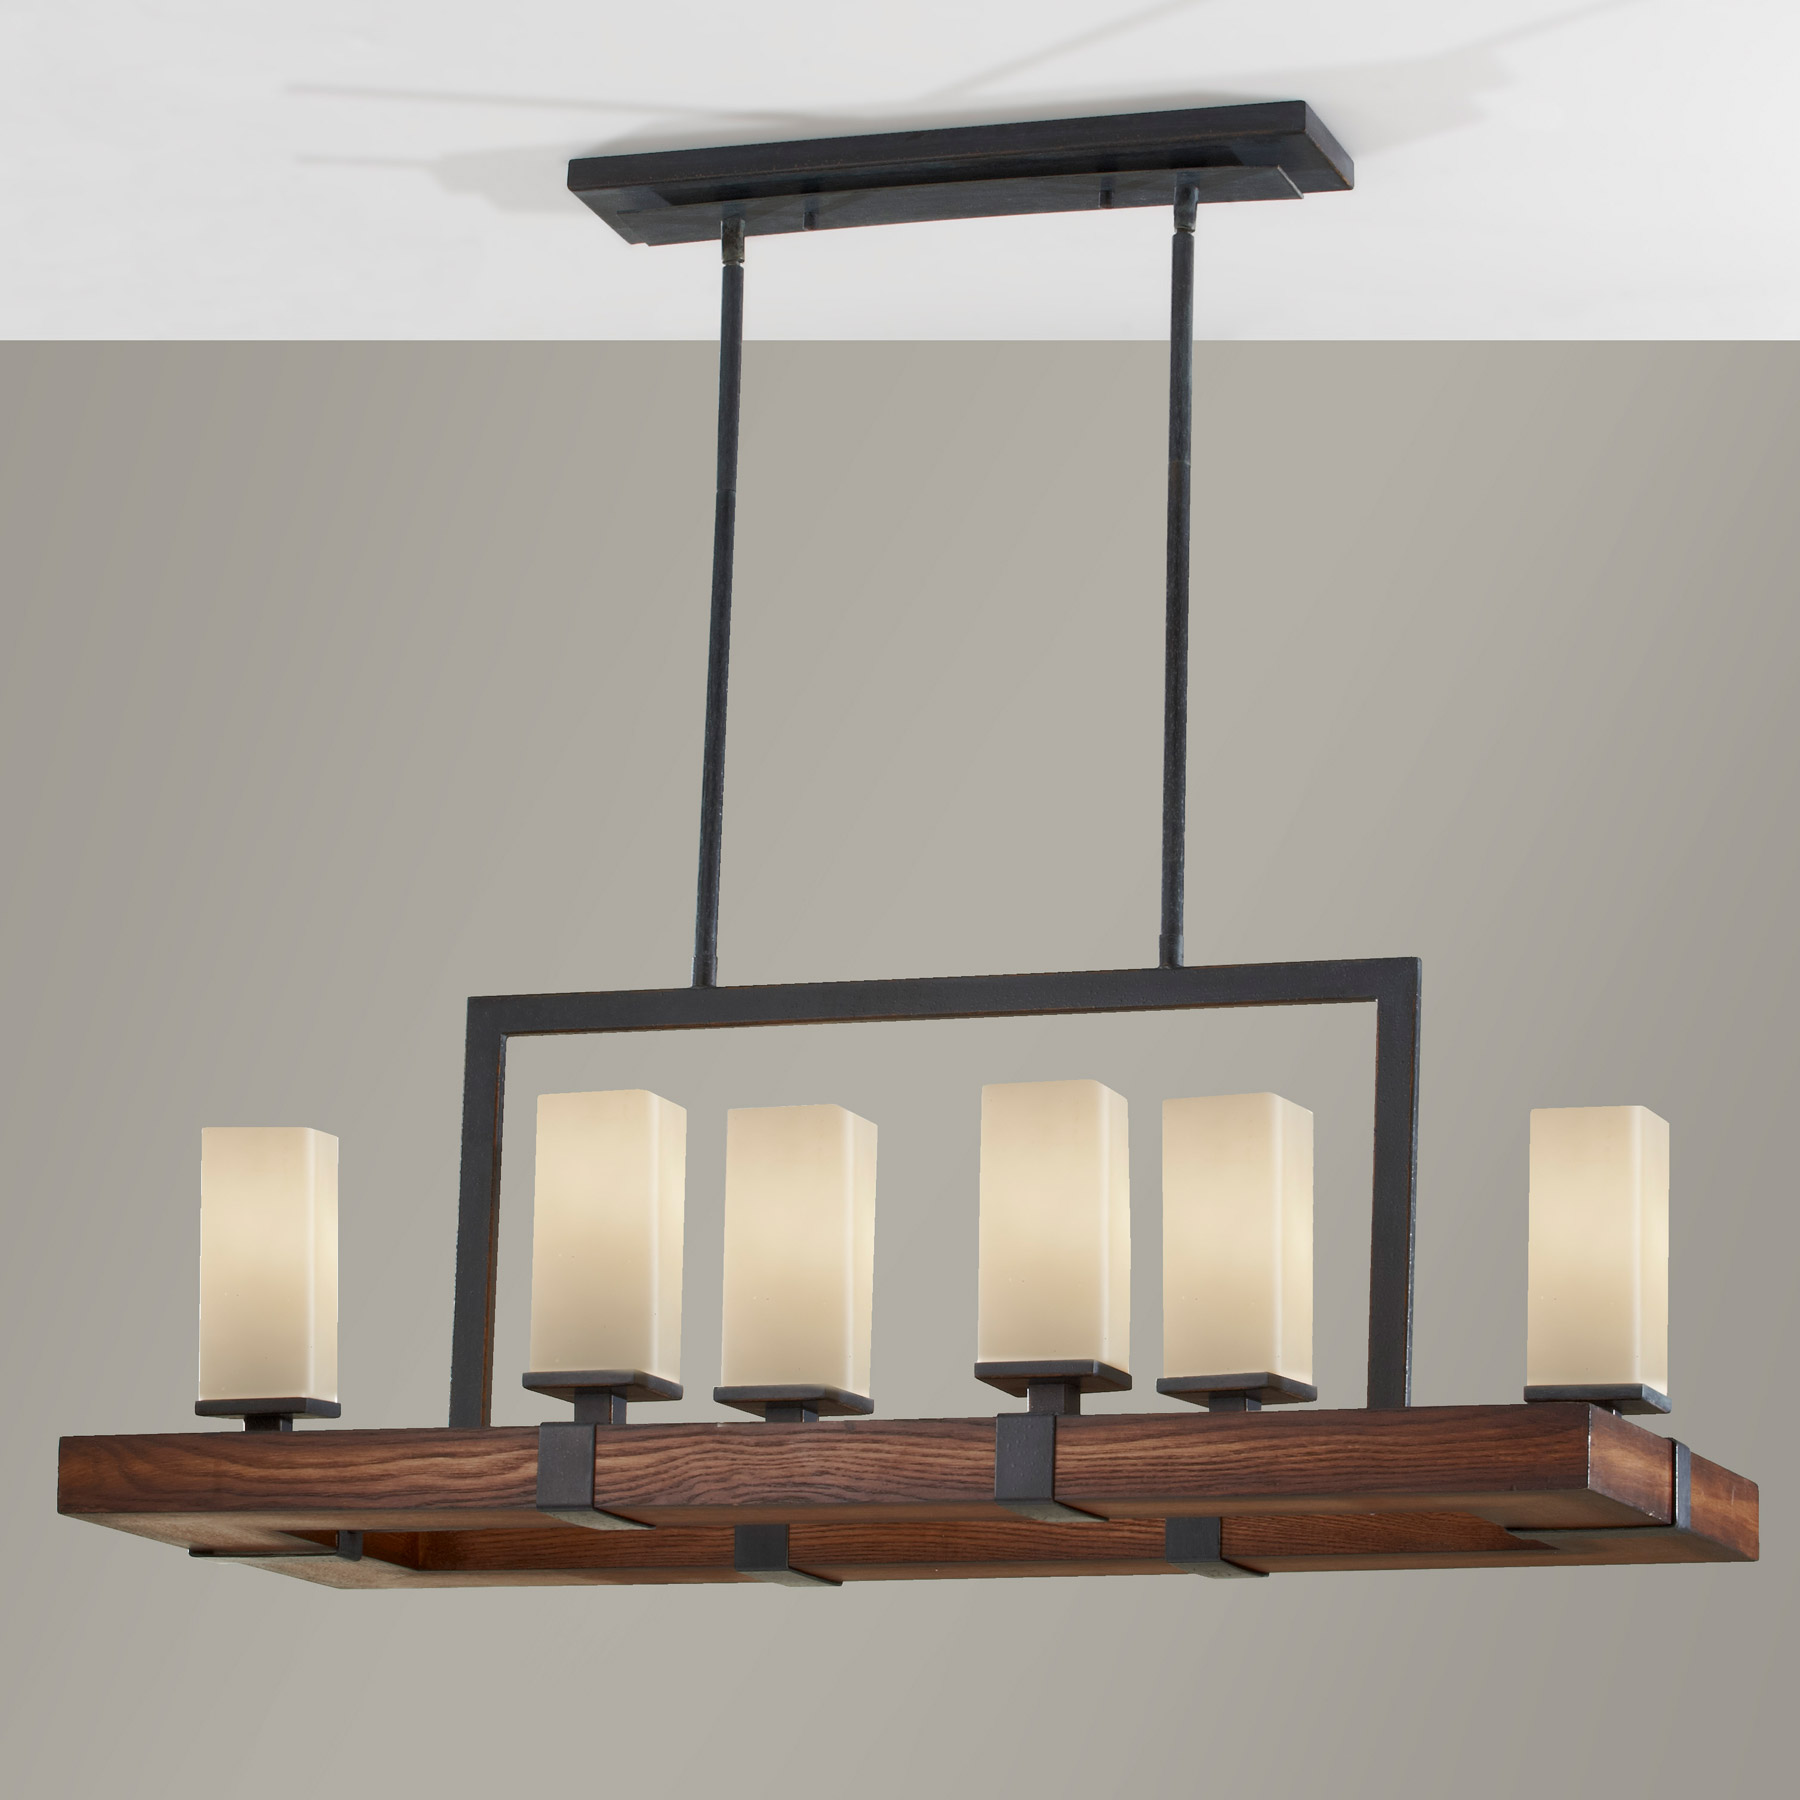 Feiss Chandelier | Murray Feiss Sconce | Murray Feiss